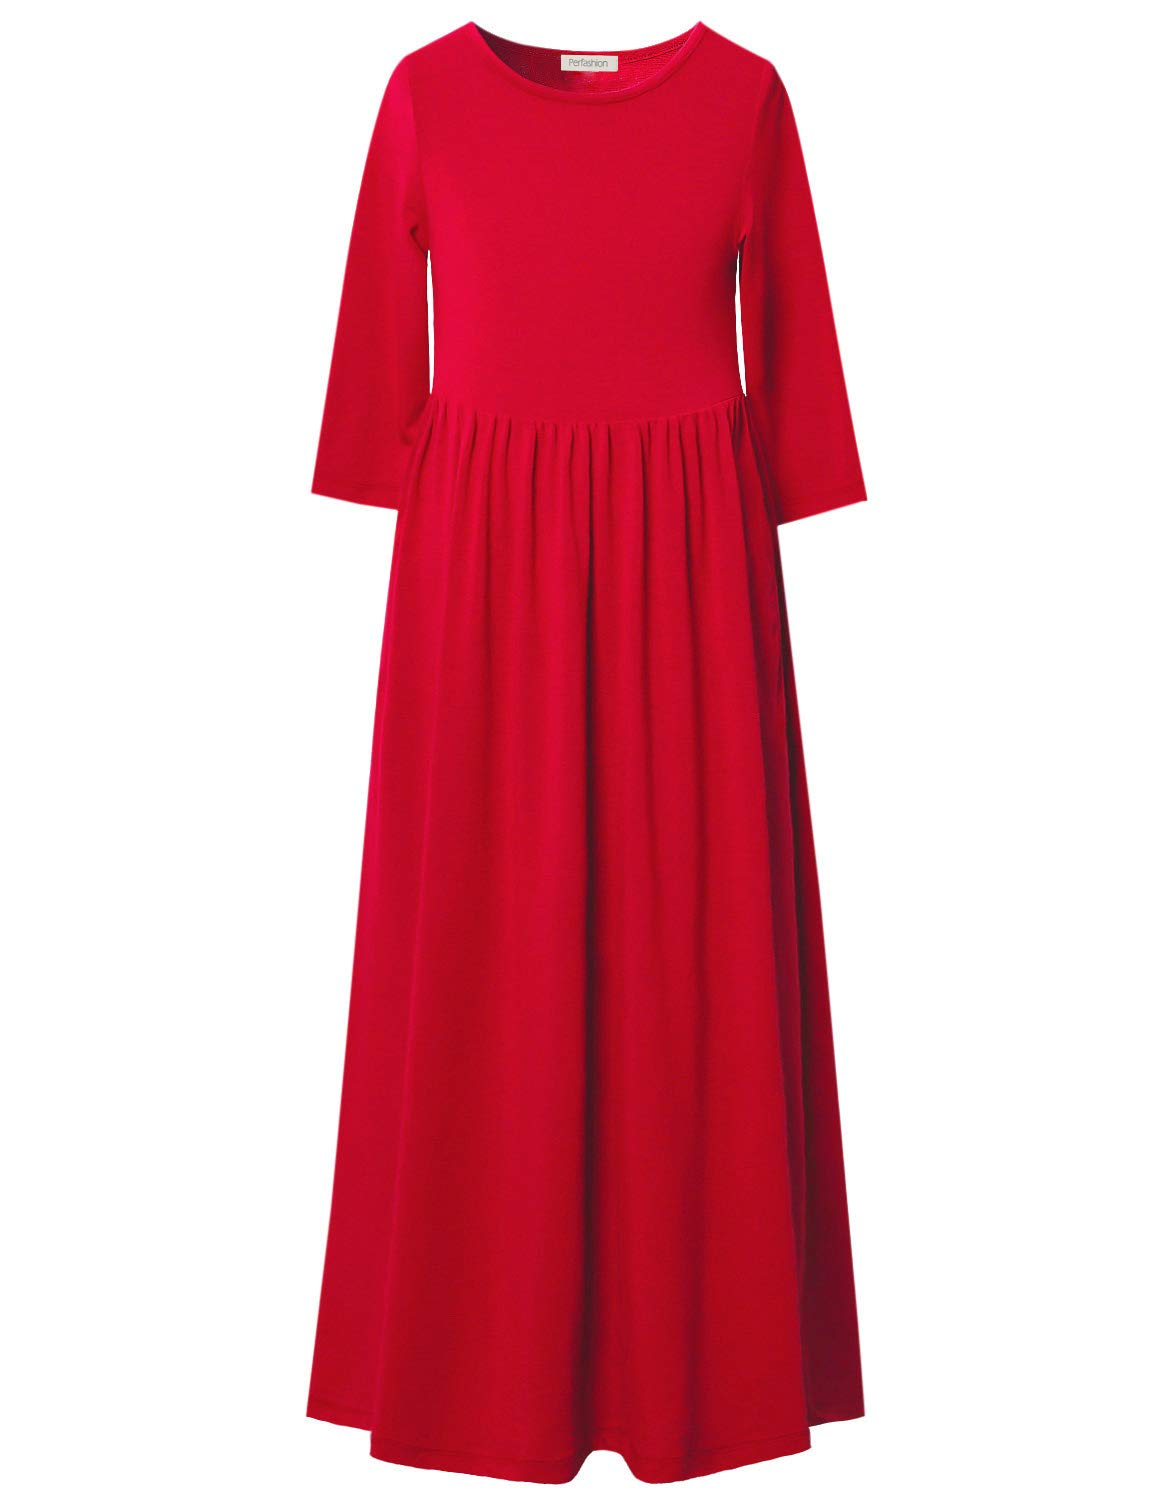 Perfashion Red Maxi Dress for Girls 3/4 Sleeve Pleated Casual Cotton Long Dress with Pockets